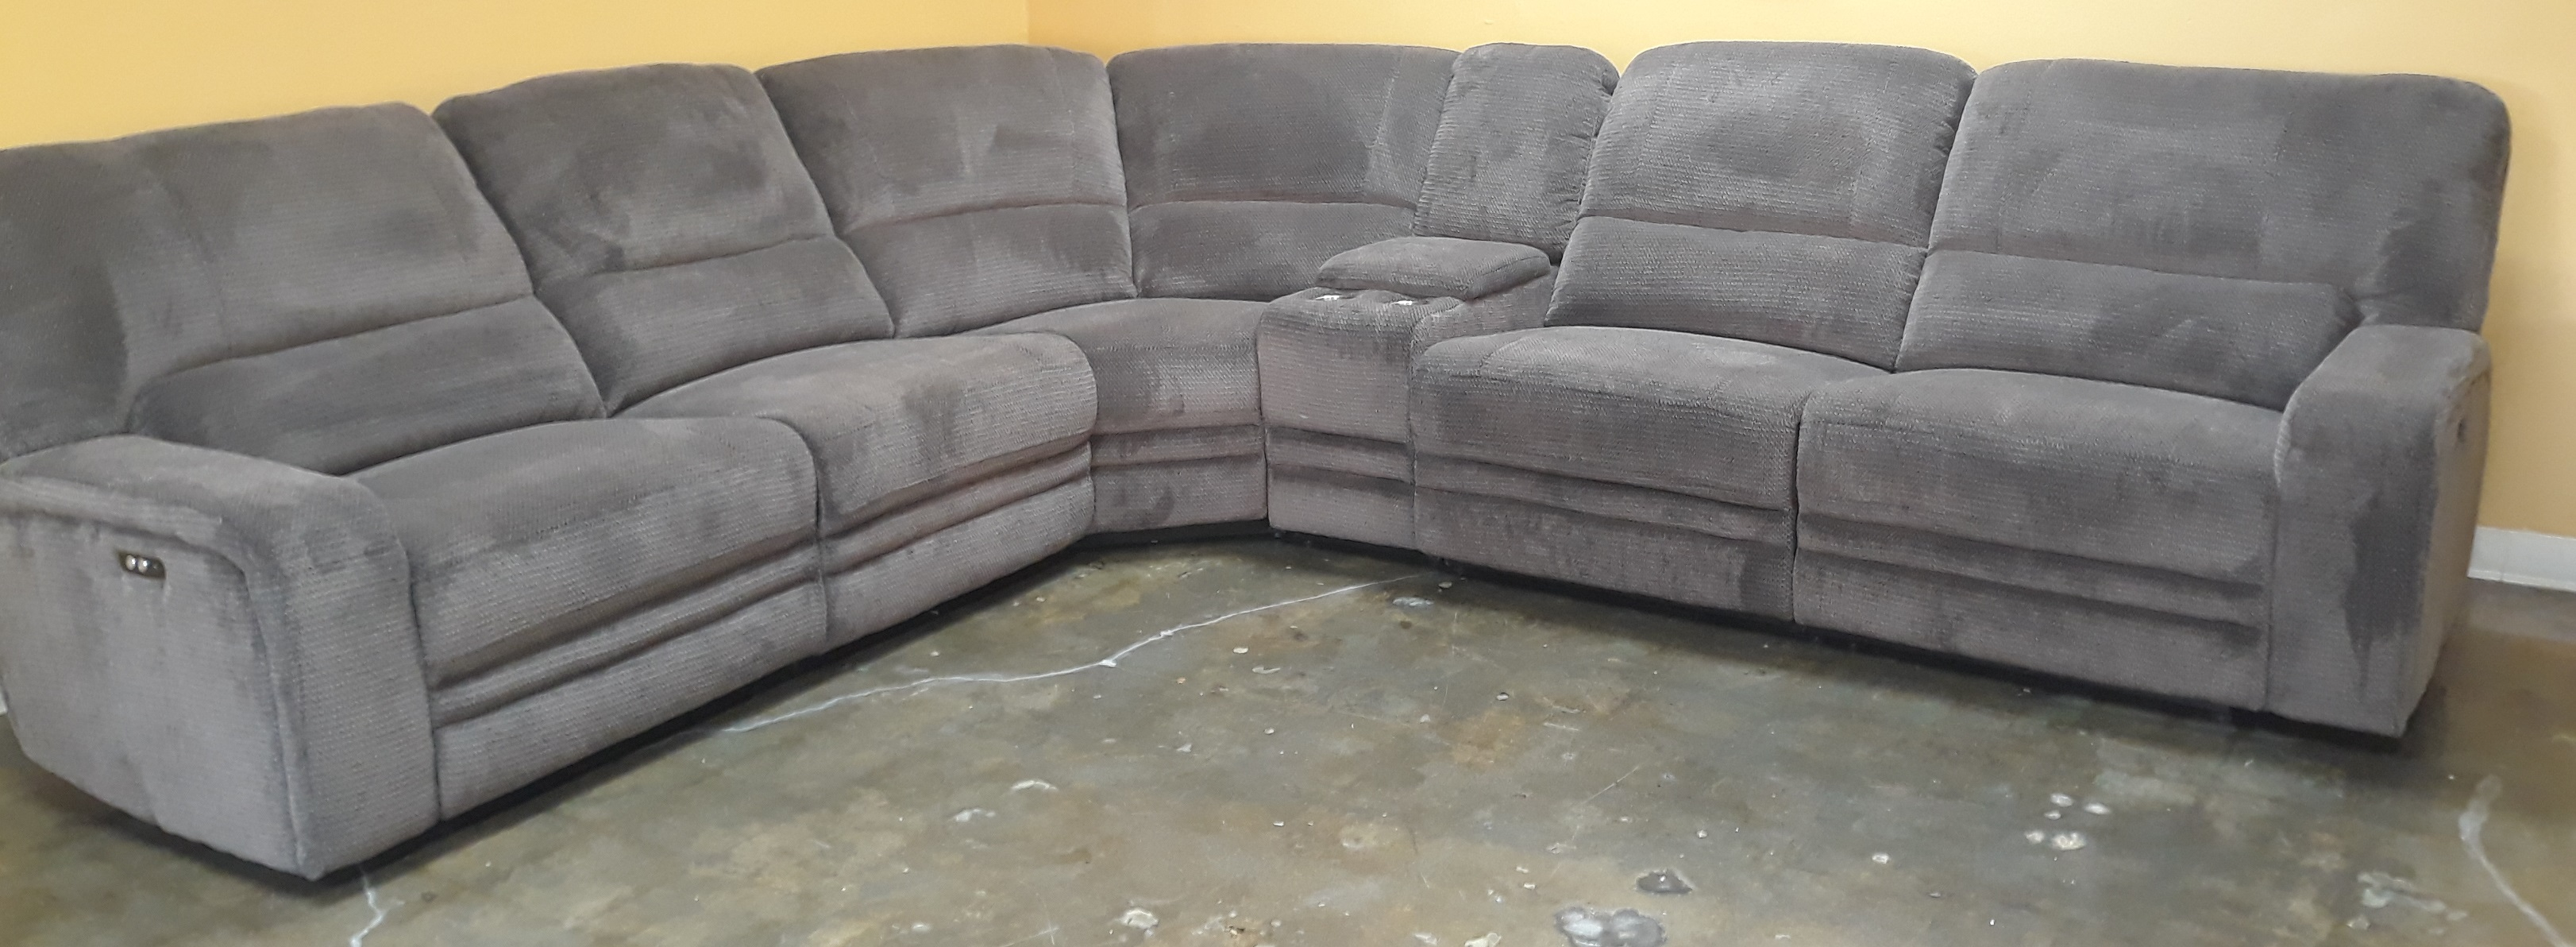 Sofa On Online World Furniture Online Furniture Store Local Showroom